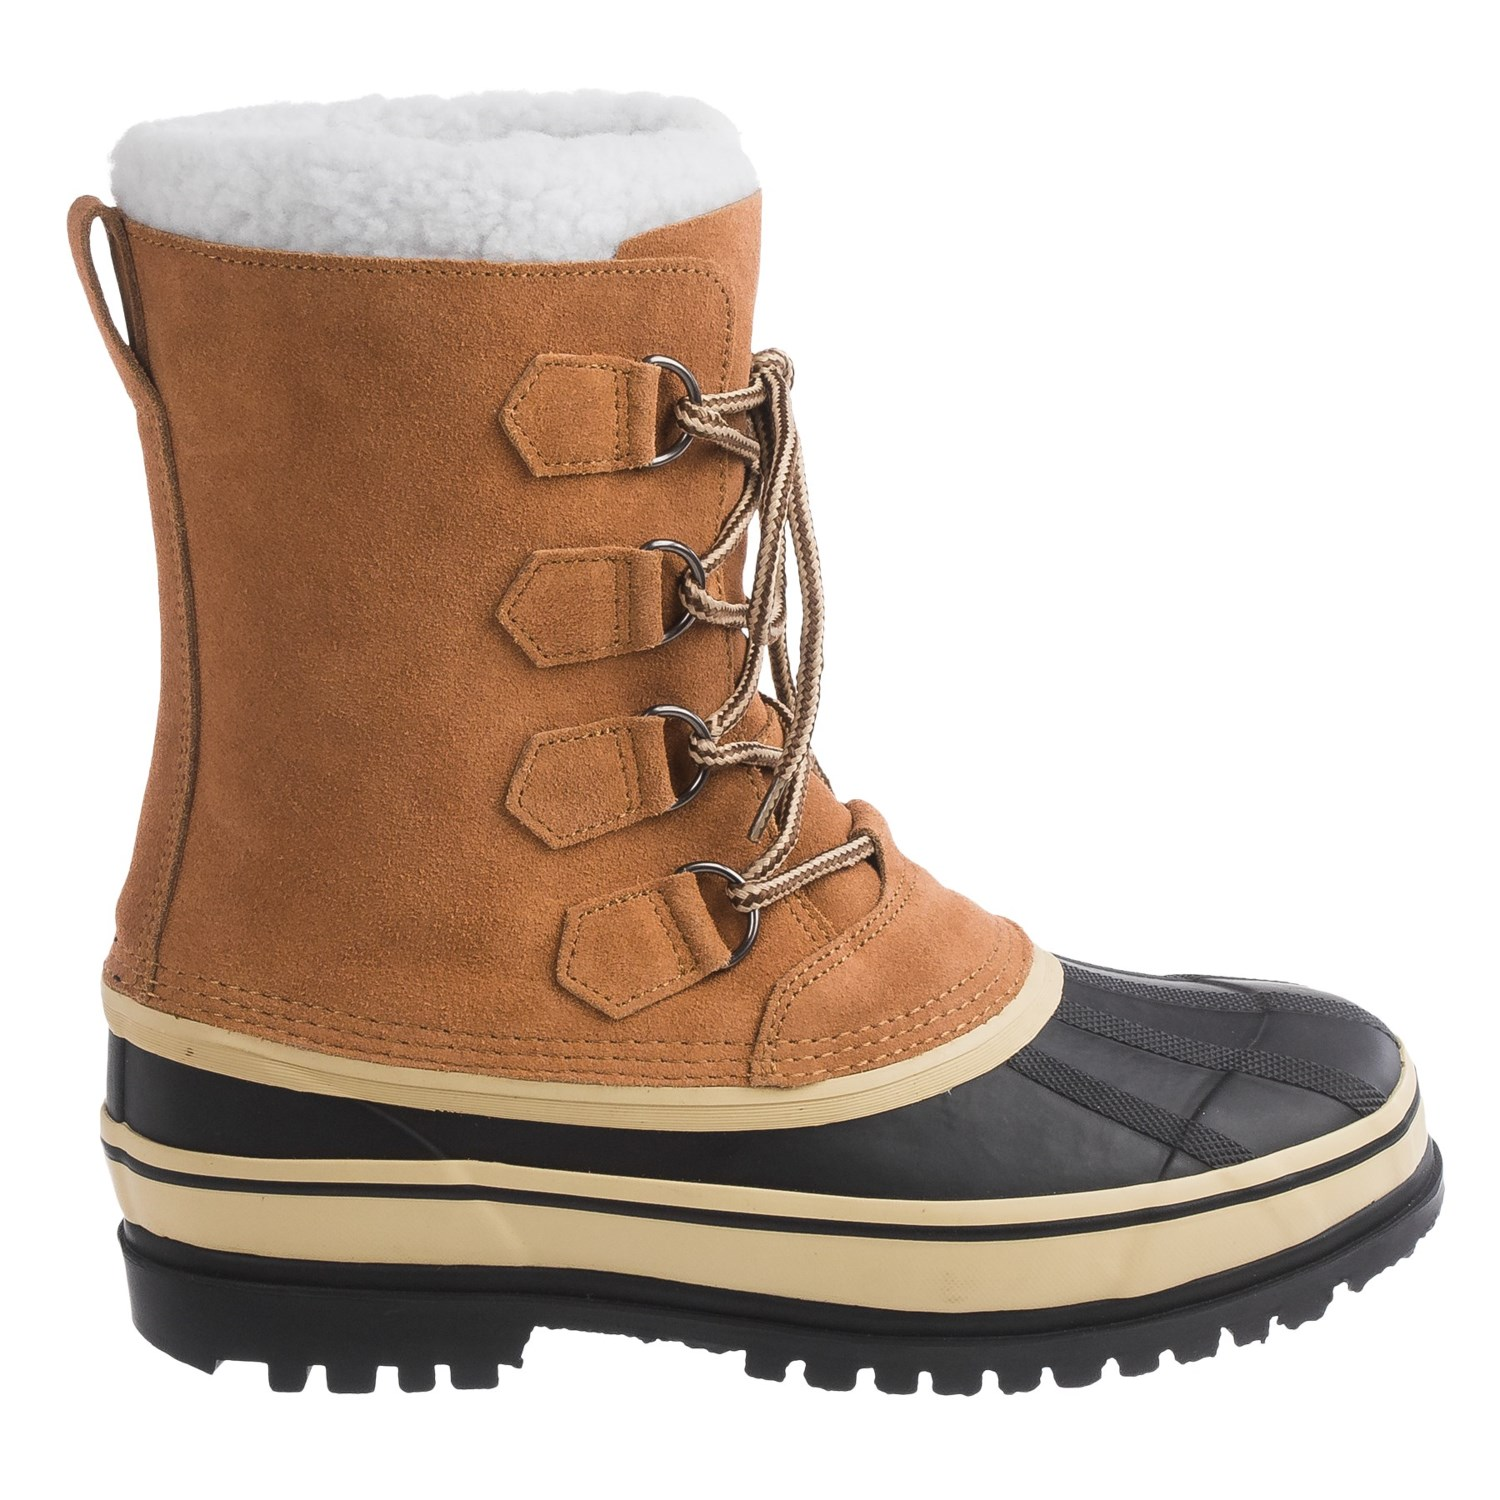 Telluride Suede Pac Boots (For Men) - Save 68%